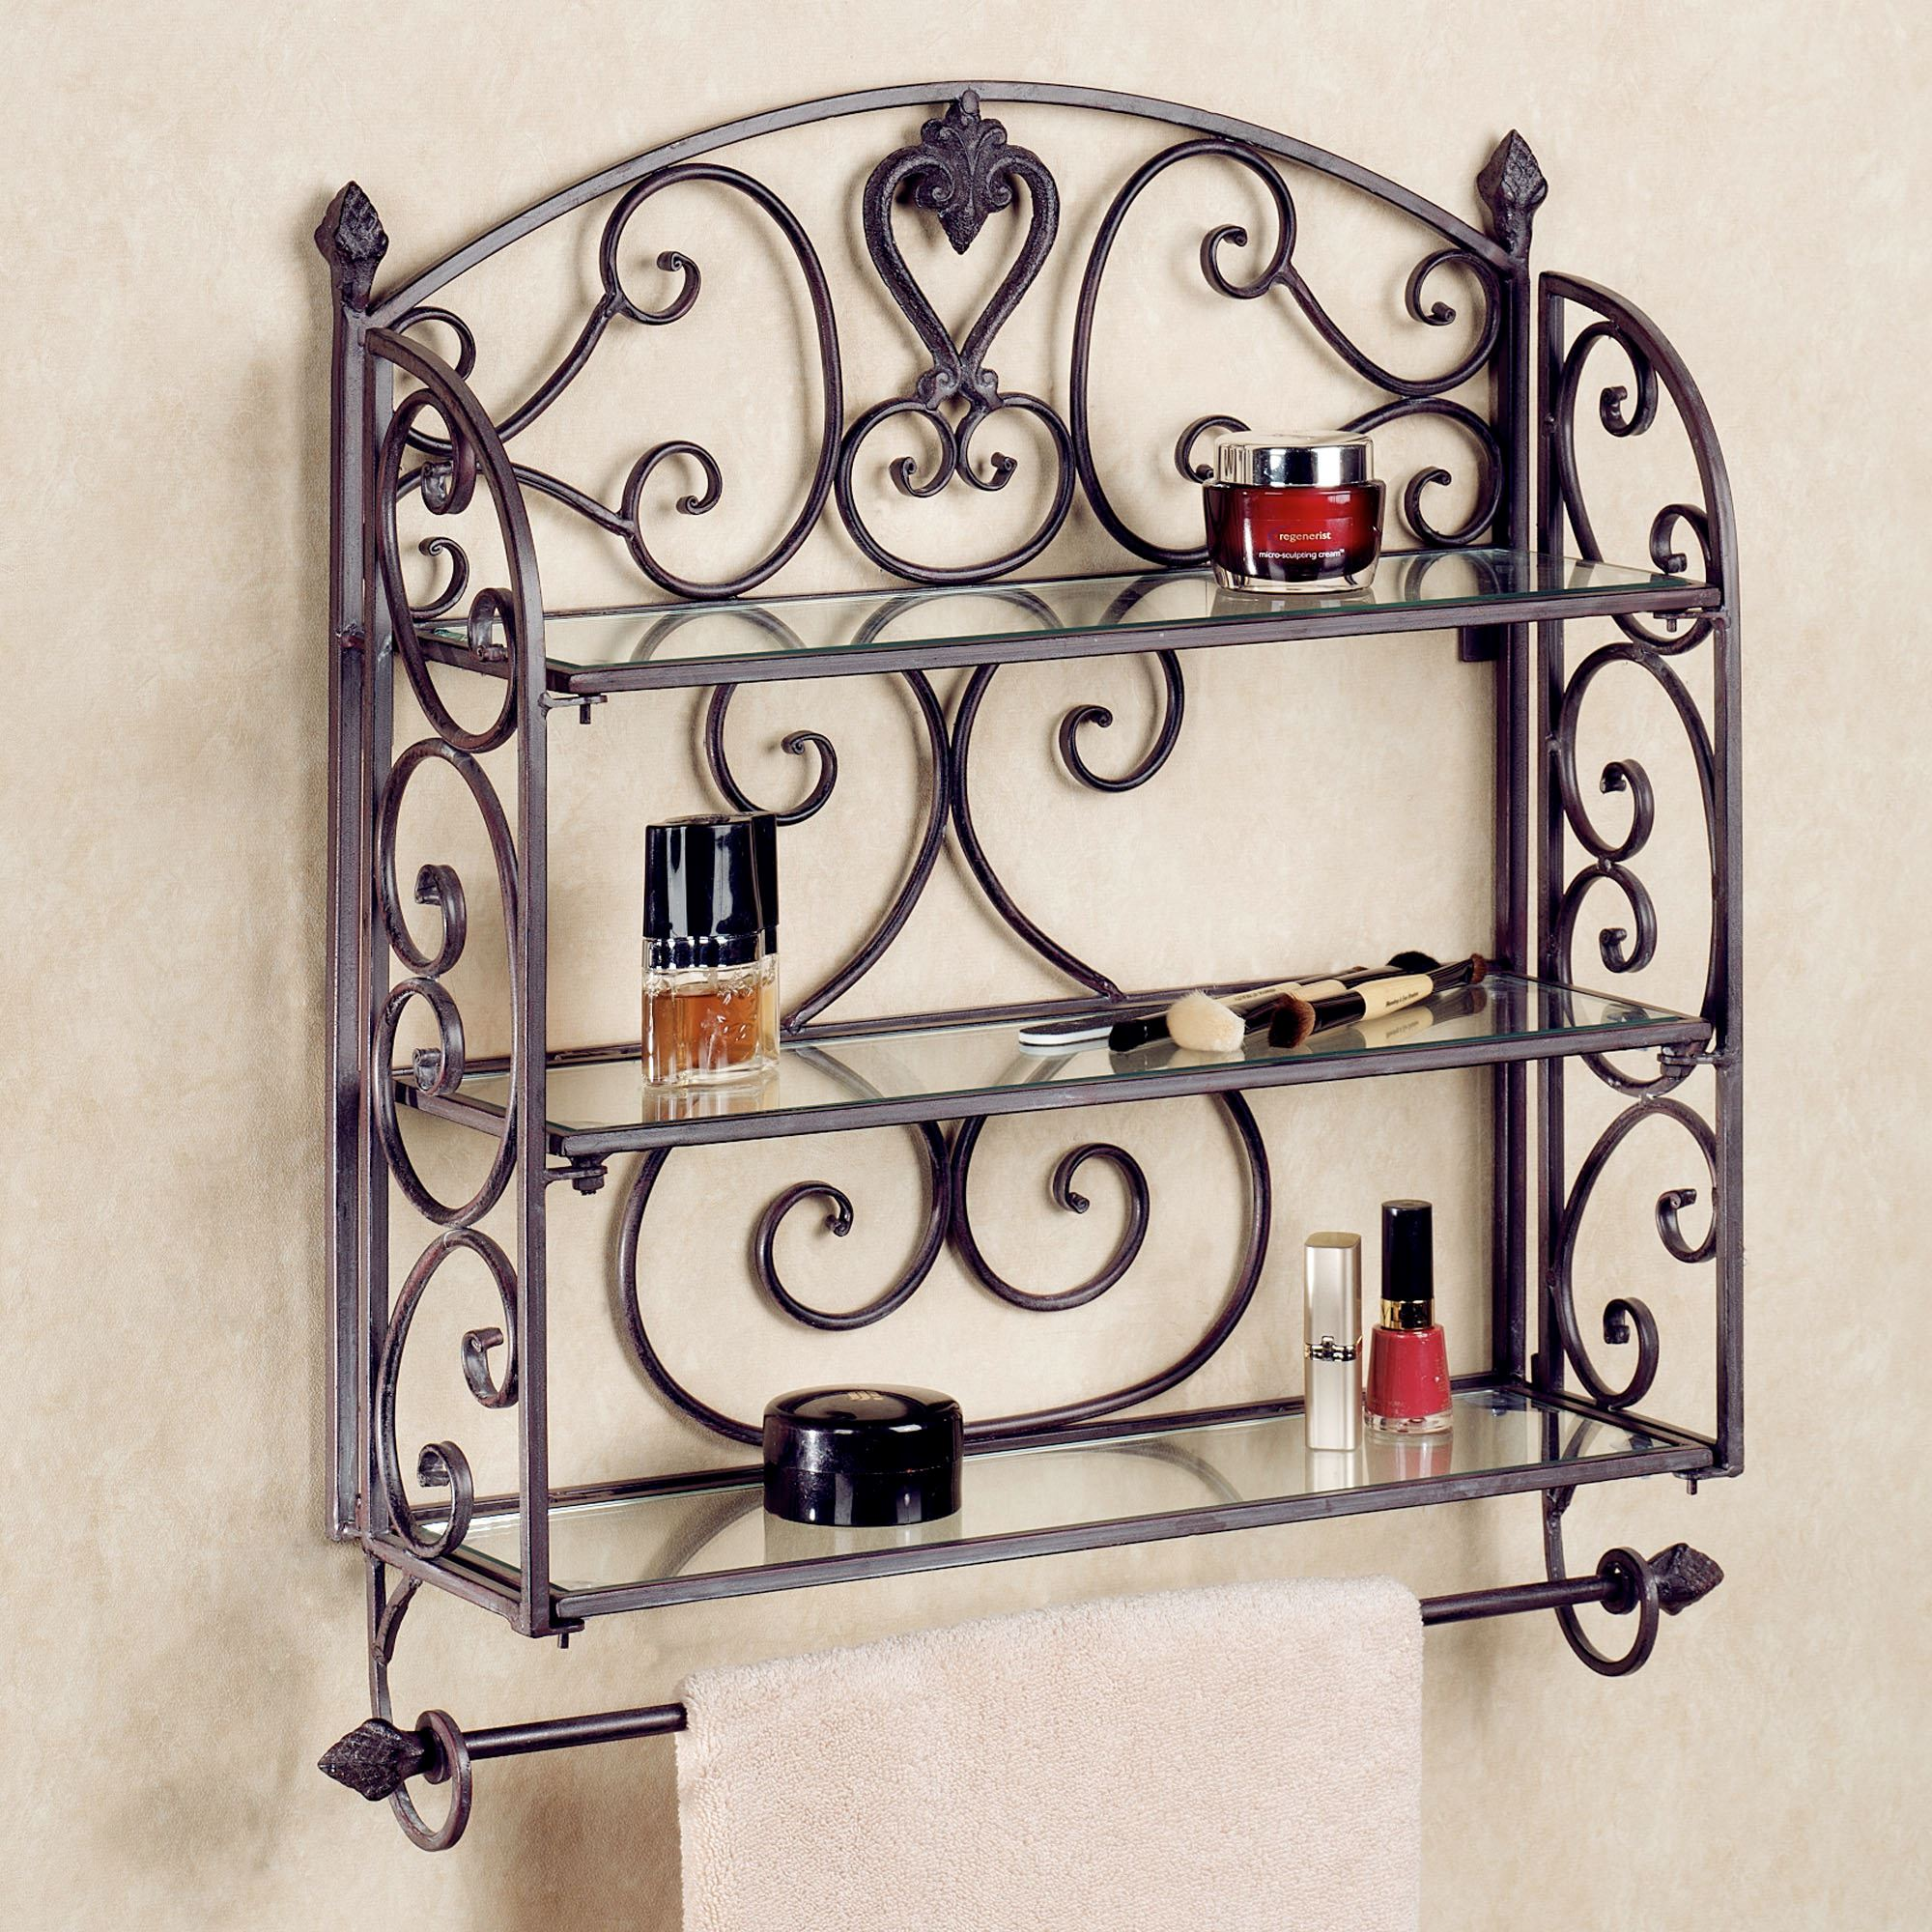 Fullsize Of Decorative Bathroom Wall Shelves